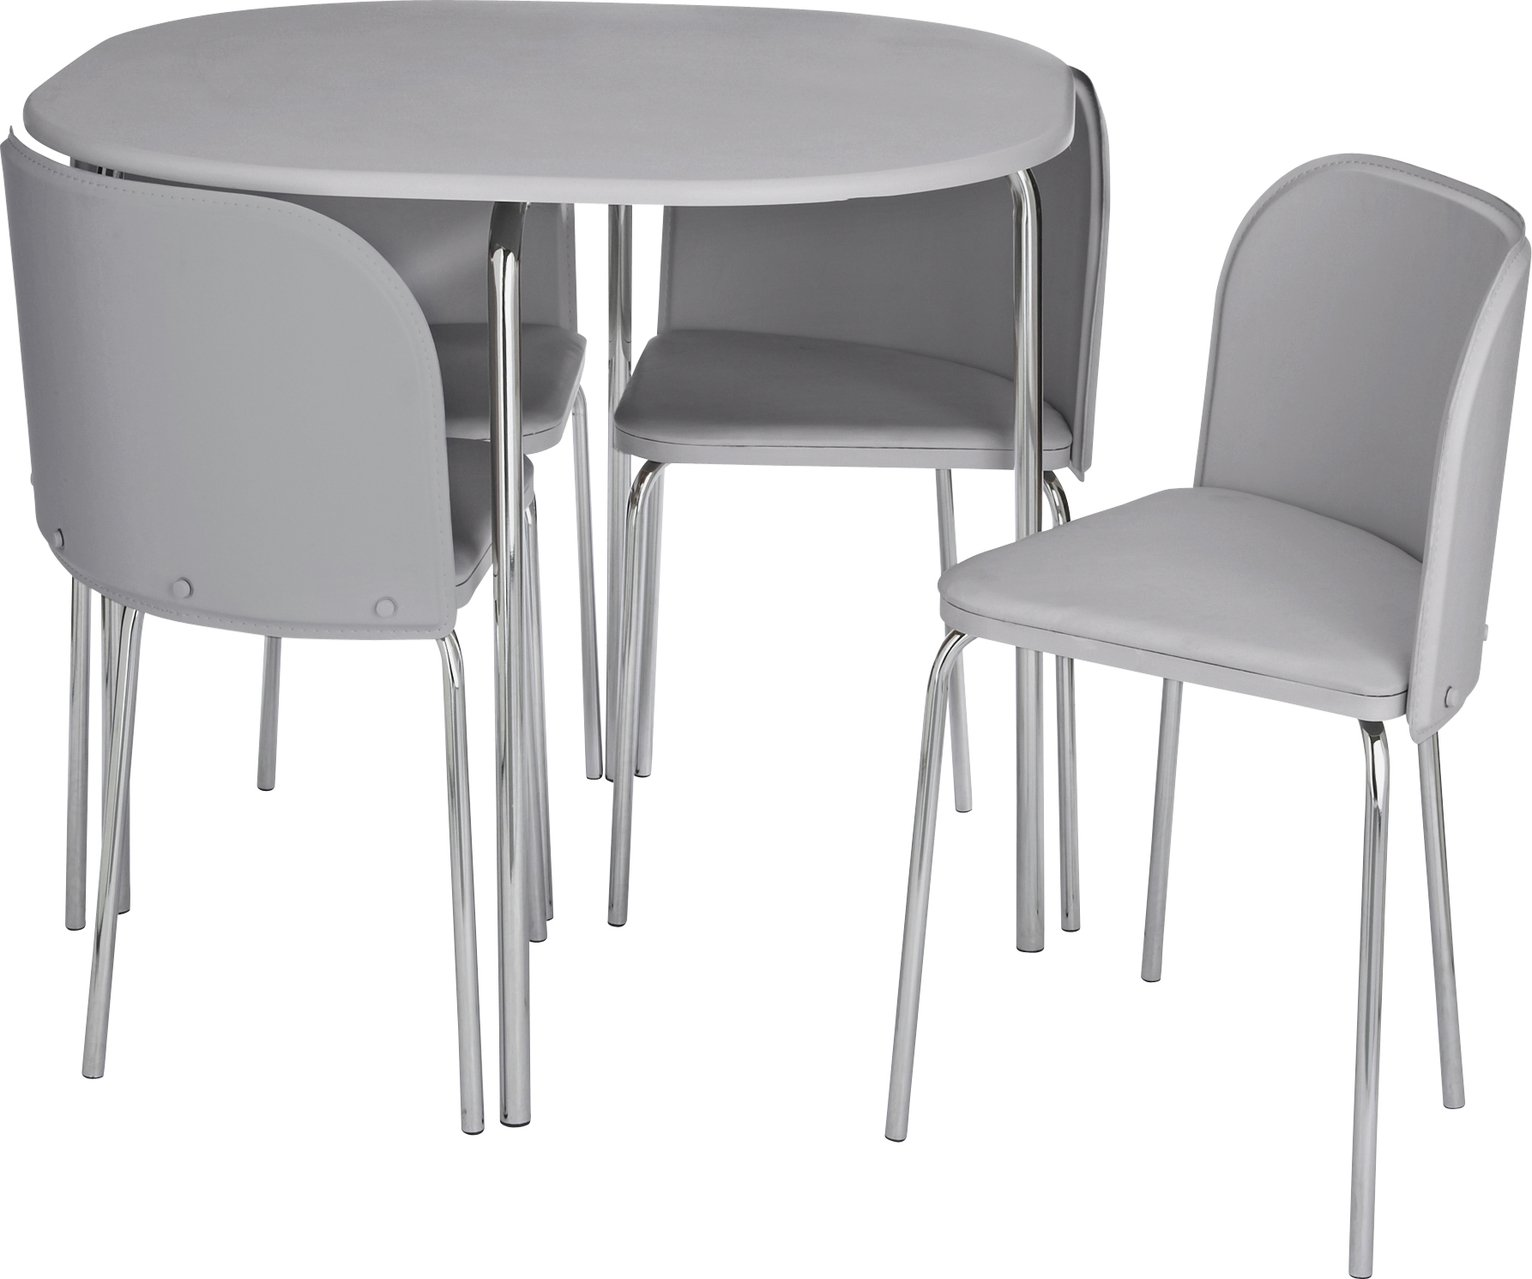 Dining table and 4 chairs costway 5 piece dining set for Round space saving dining table and chairs